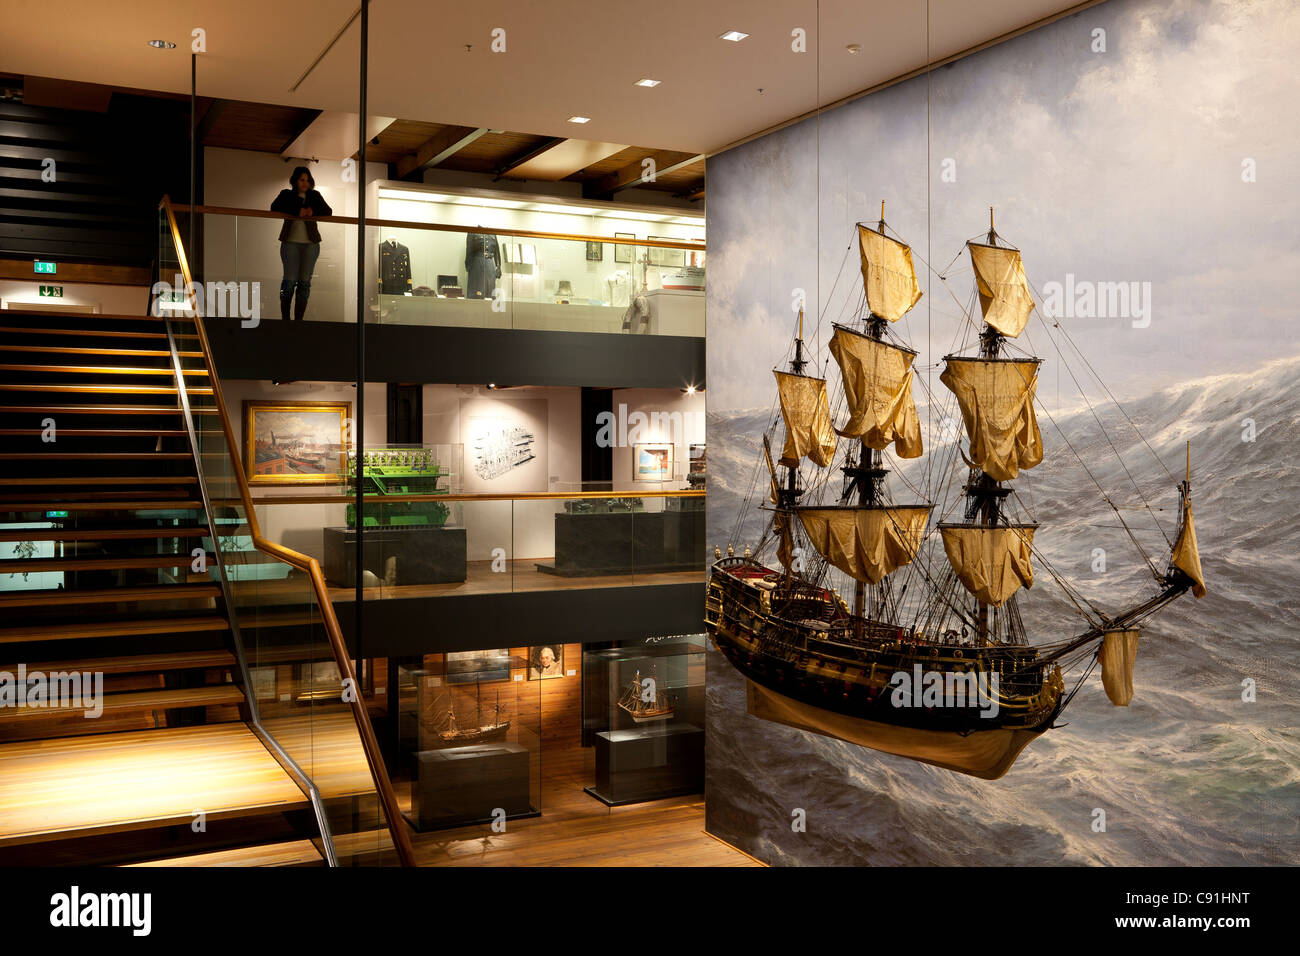 Internationales Maritimes Museum Hamburg, Hanseatic city of Hamburg, Germany, Europe - Stock Image